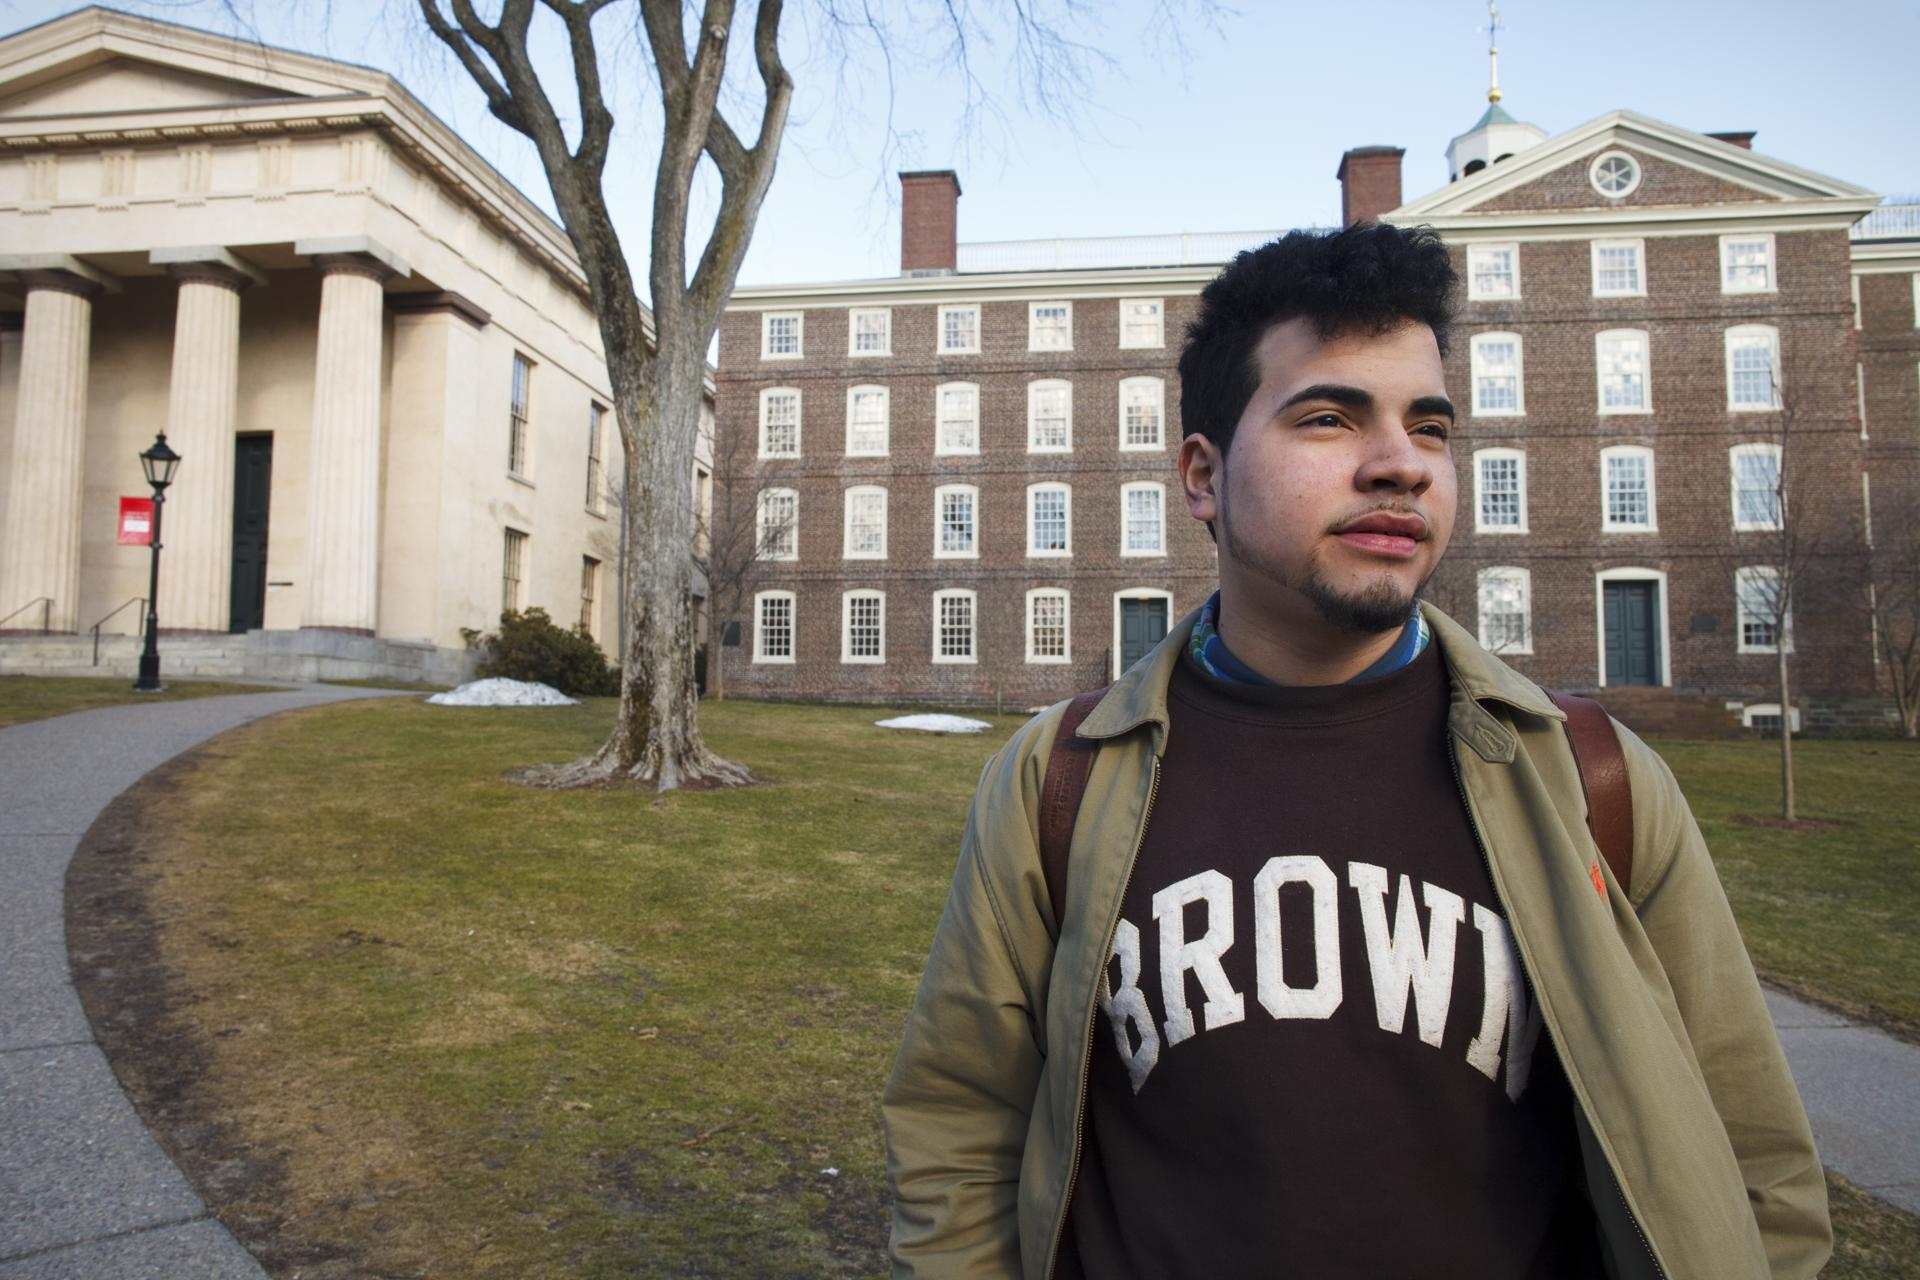 "03/17/2015 - Providence, RI - Alejandro Claudio, cq, a freshman at Brown University, walks through campus on a sunny Tuesday afternoon. Claudio gained a full-ride scholarship to the Ivy League school, which is the only way that the son of poor immigrant parents could hope to attend. He is shocked regularly by the huge contrast between his world at school and the world he's used to at home. Claudio is majoring in economics. ÒIf I fail, IÕm going back to poverty, to working in a factory,"" said Claudio. ""I need to get good grades and get a job that pays well enough to help feed my family,Ó added Claudio. Topic: 041215ivyleague. Photo by Dina Rudick/Globe Staff."